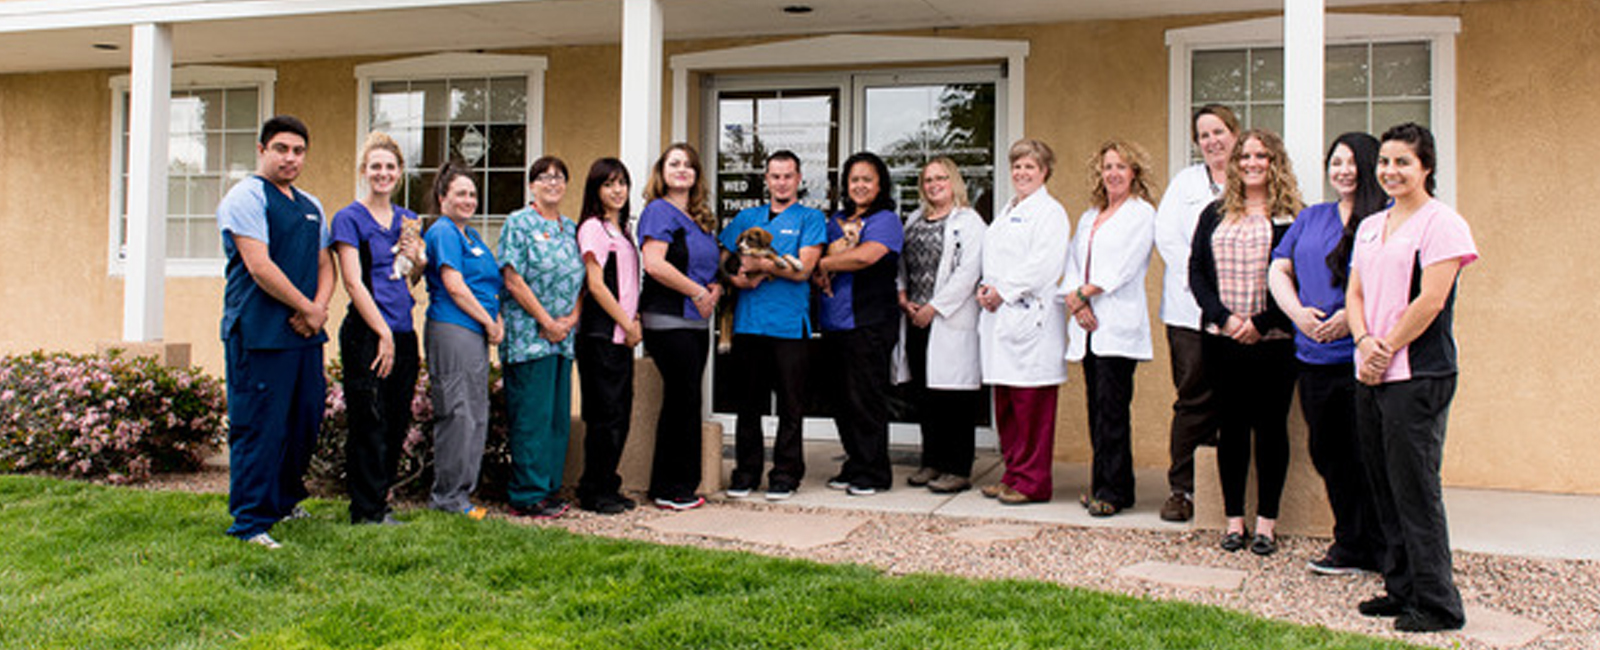 Homepage Team Picture of VCA Town and Country Animal Hospital